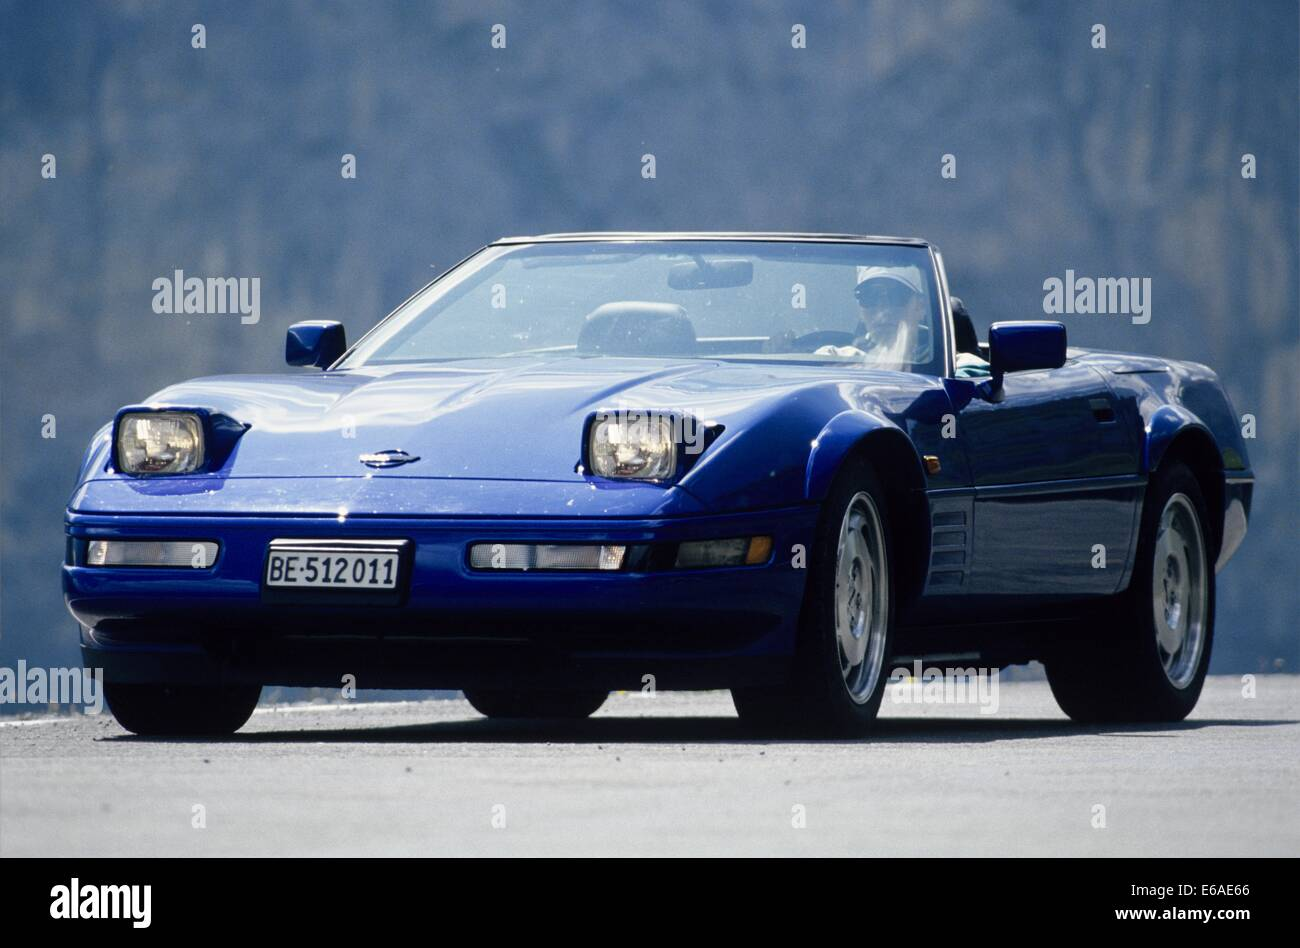 Corvette 1994 chevy corvette : Chevrolet Corvette C4 fourth generation - 1994 Model Year - front ...